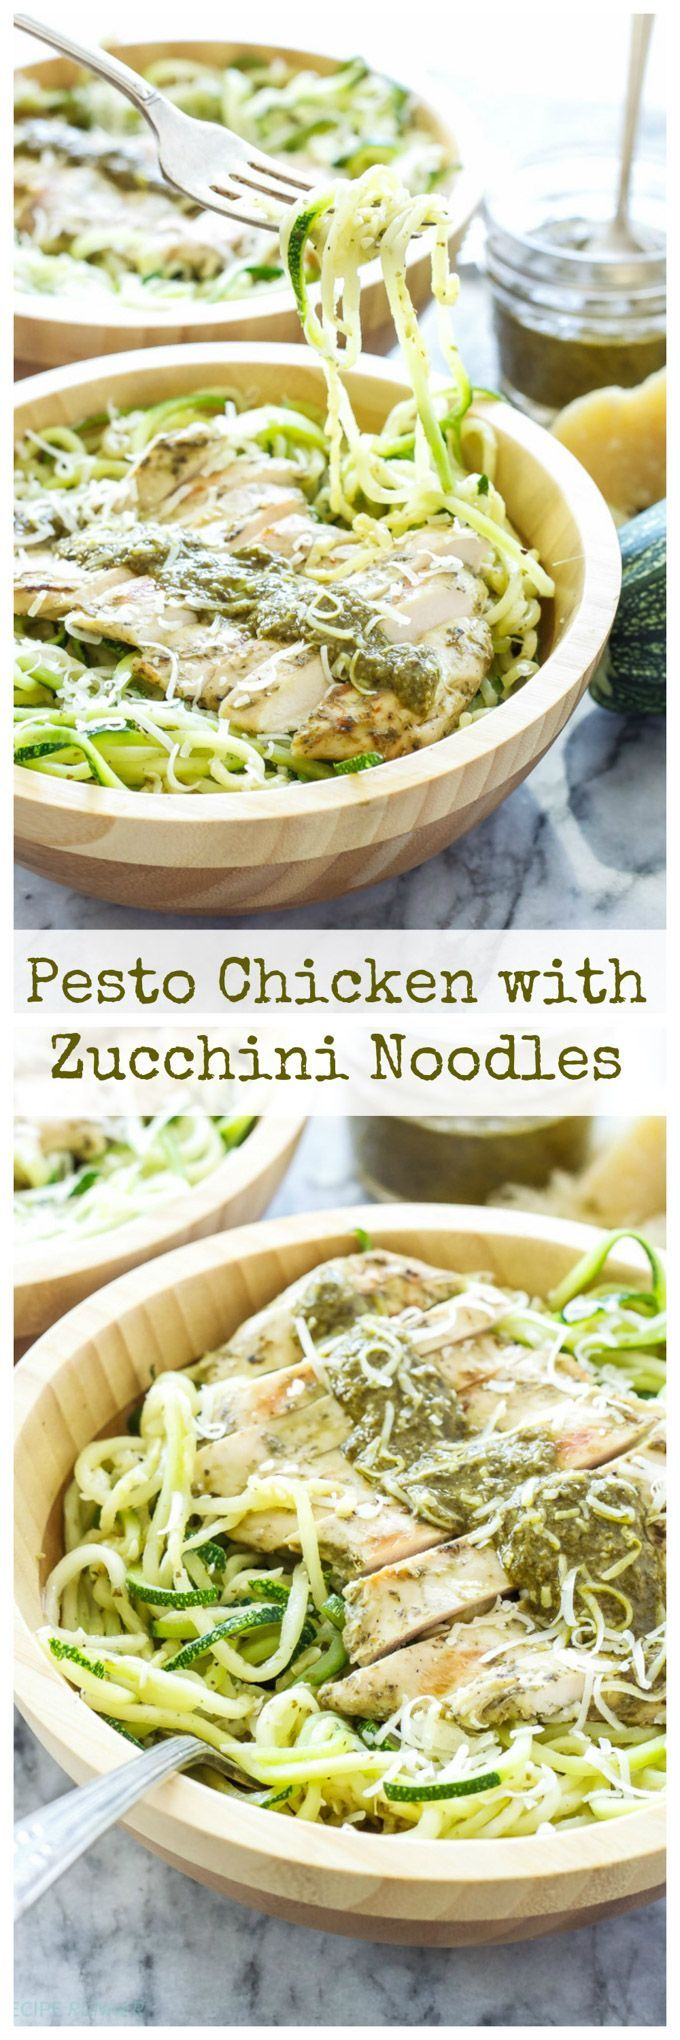 Pesto chicken on top of zucchini noodles is a healthy and delicious alternative to regular pasta!